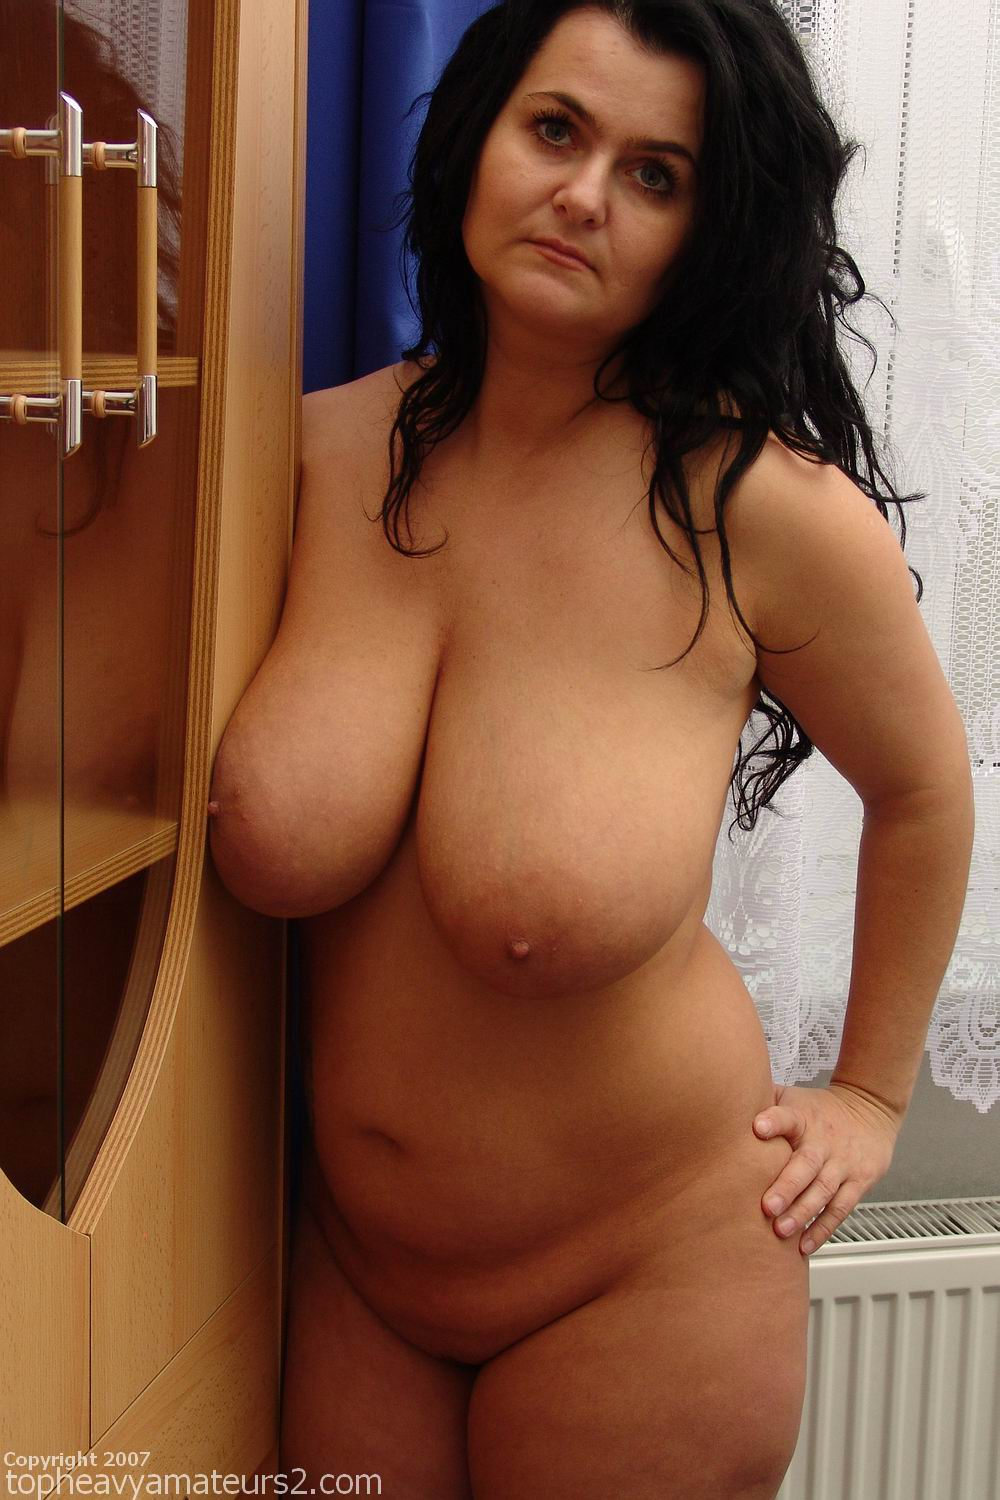 Your business! best big tits pics interesting phrase